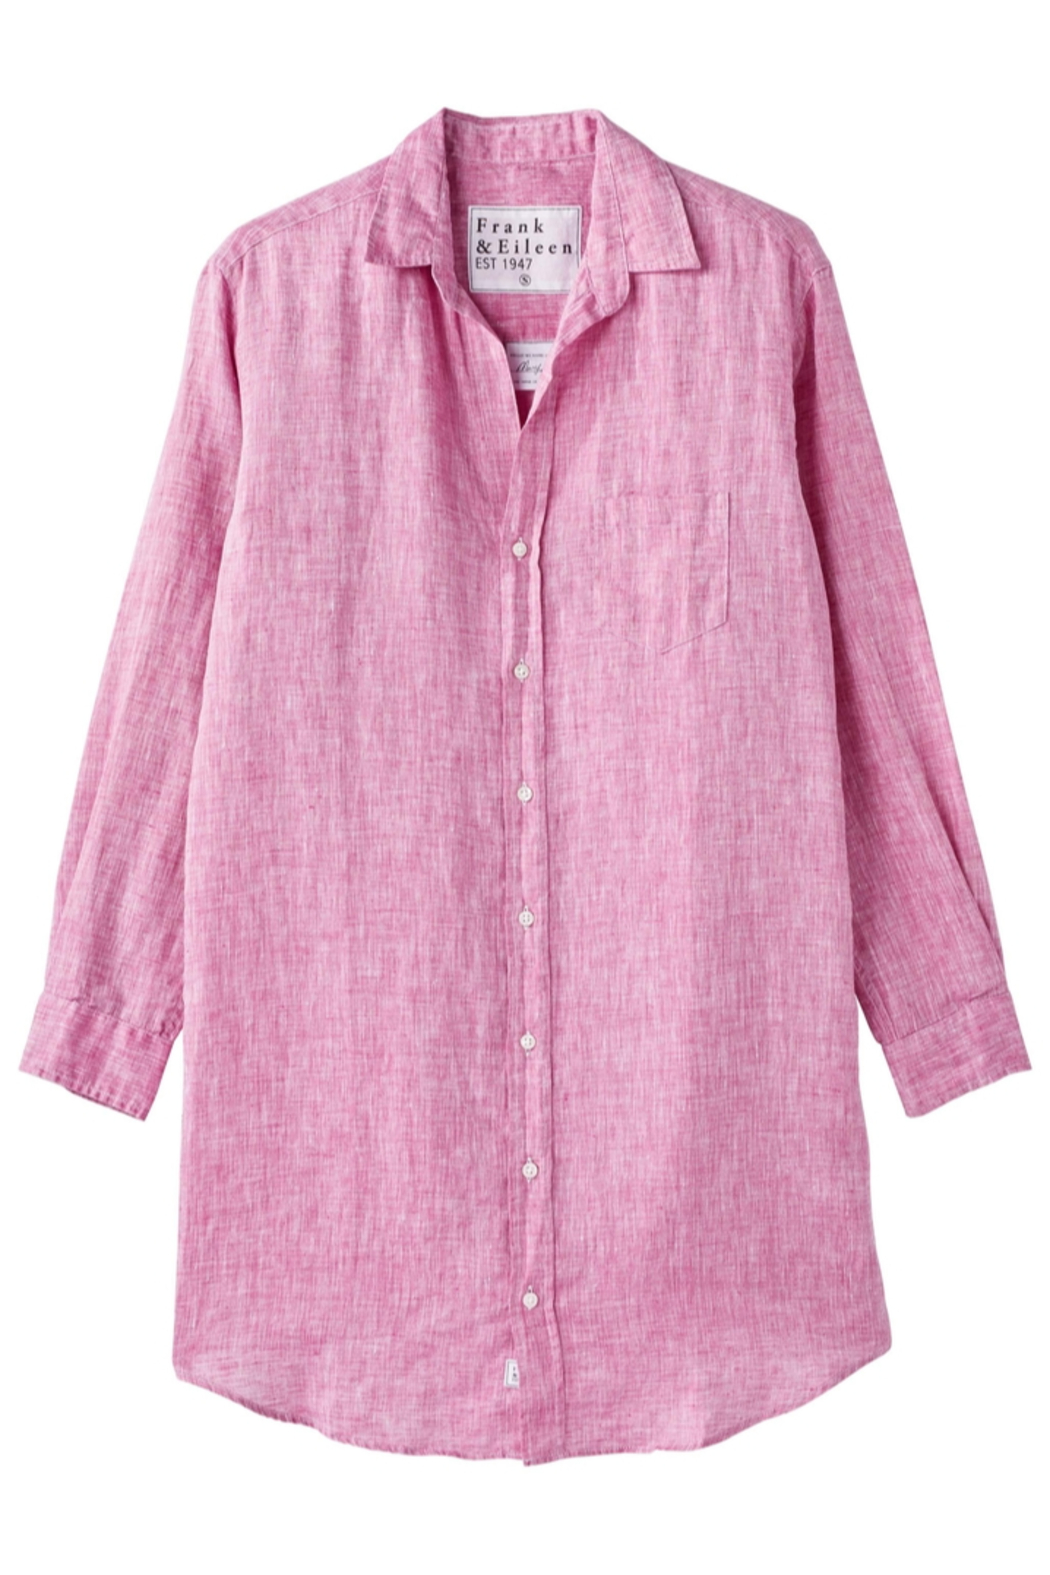 Frank And Eileen Frank & Eileen Mary Woven Button Up Dress - Side Cropped Image